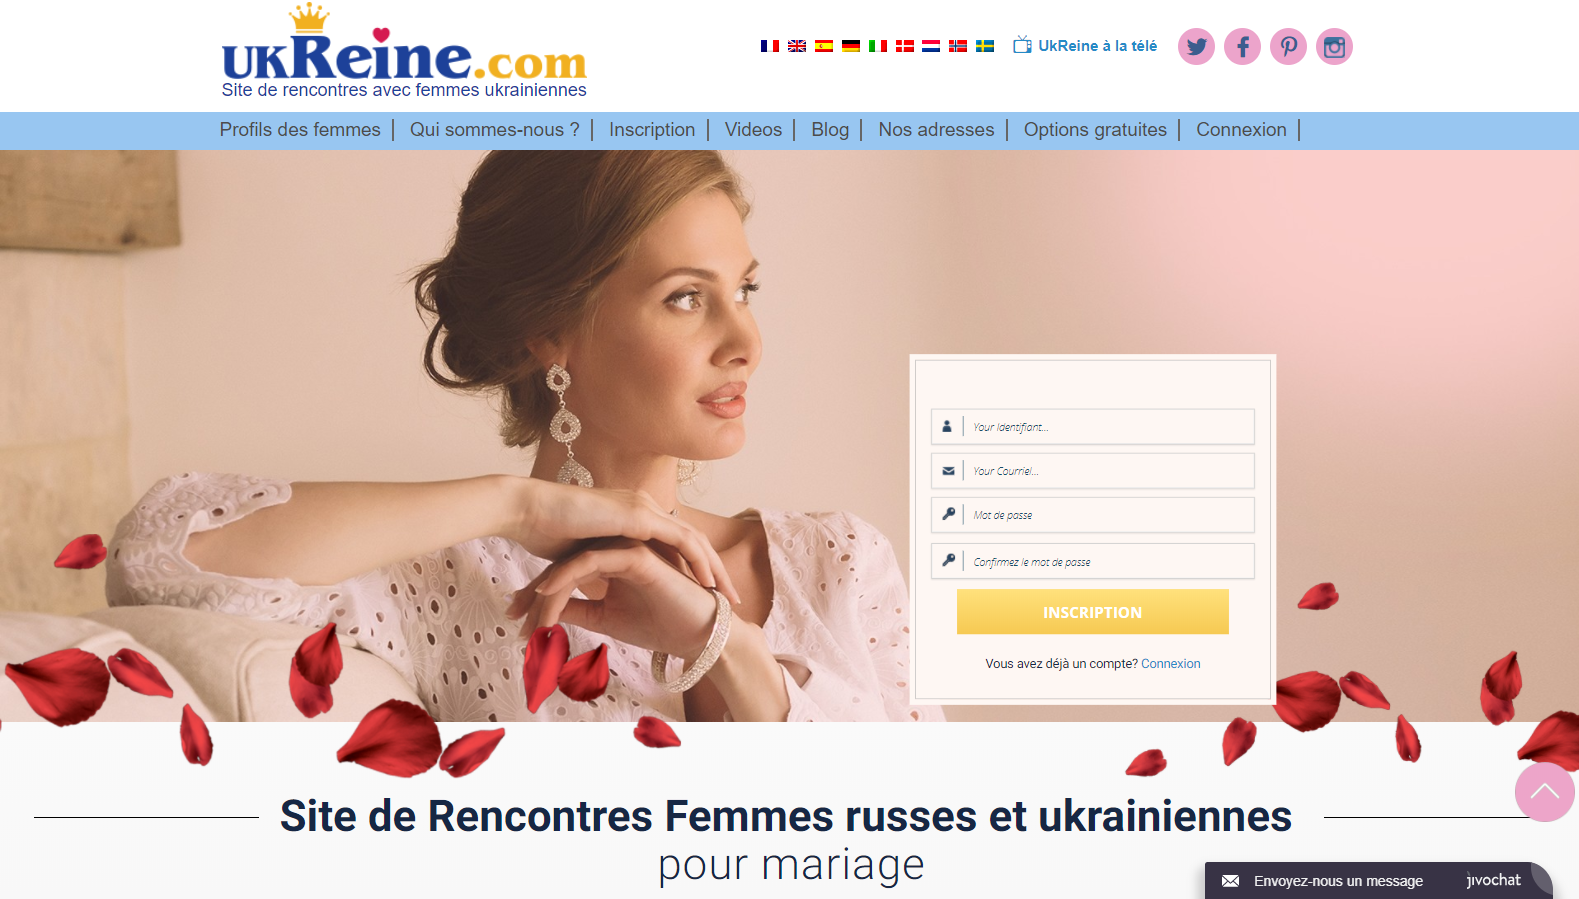 International dating sites for marriage